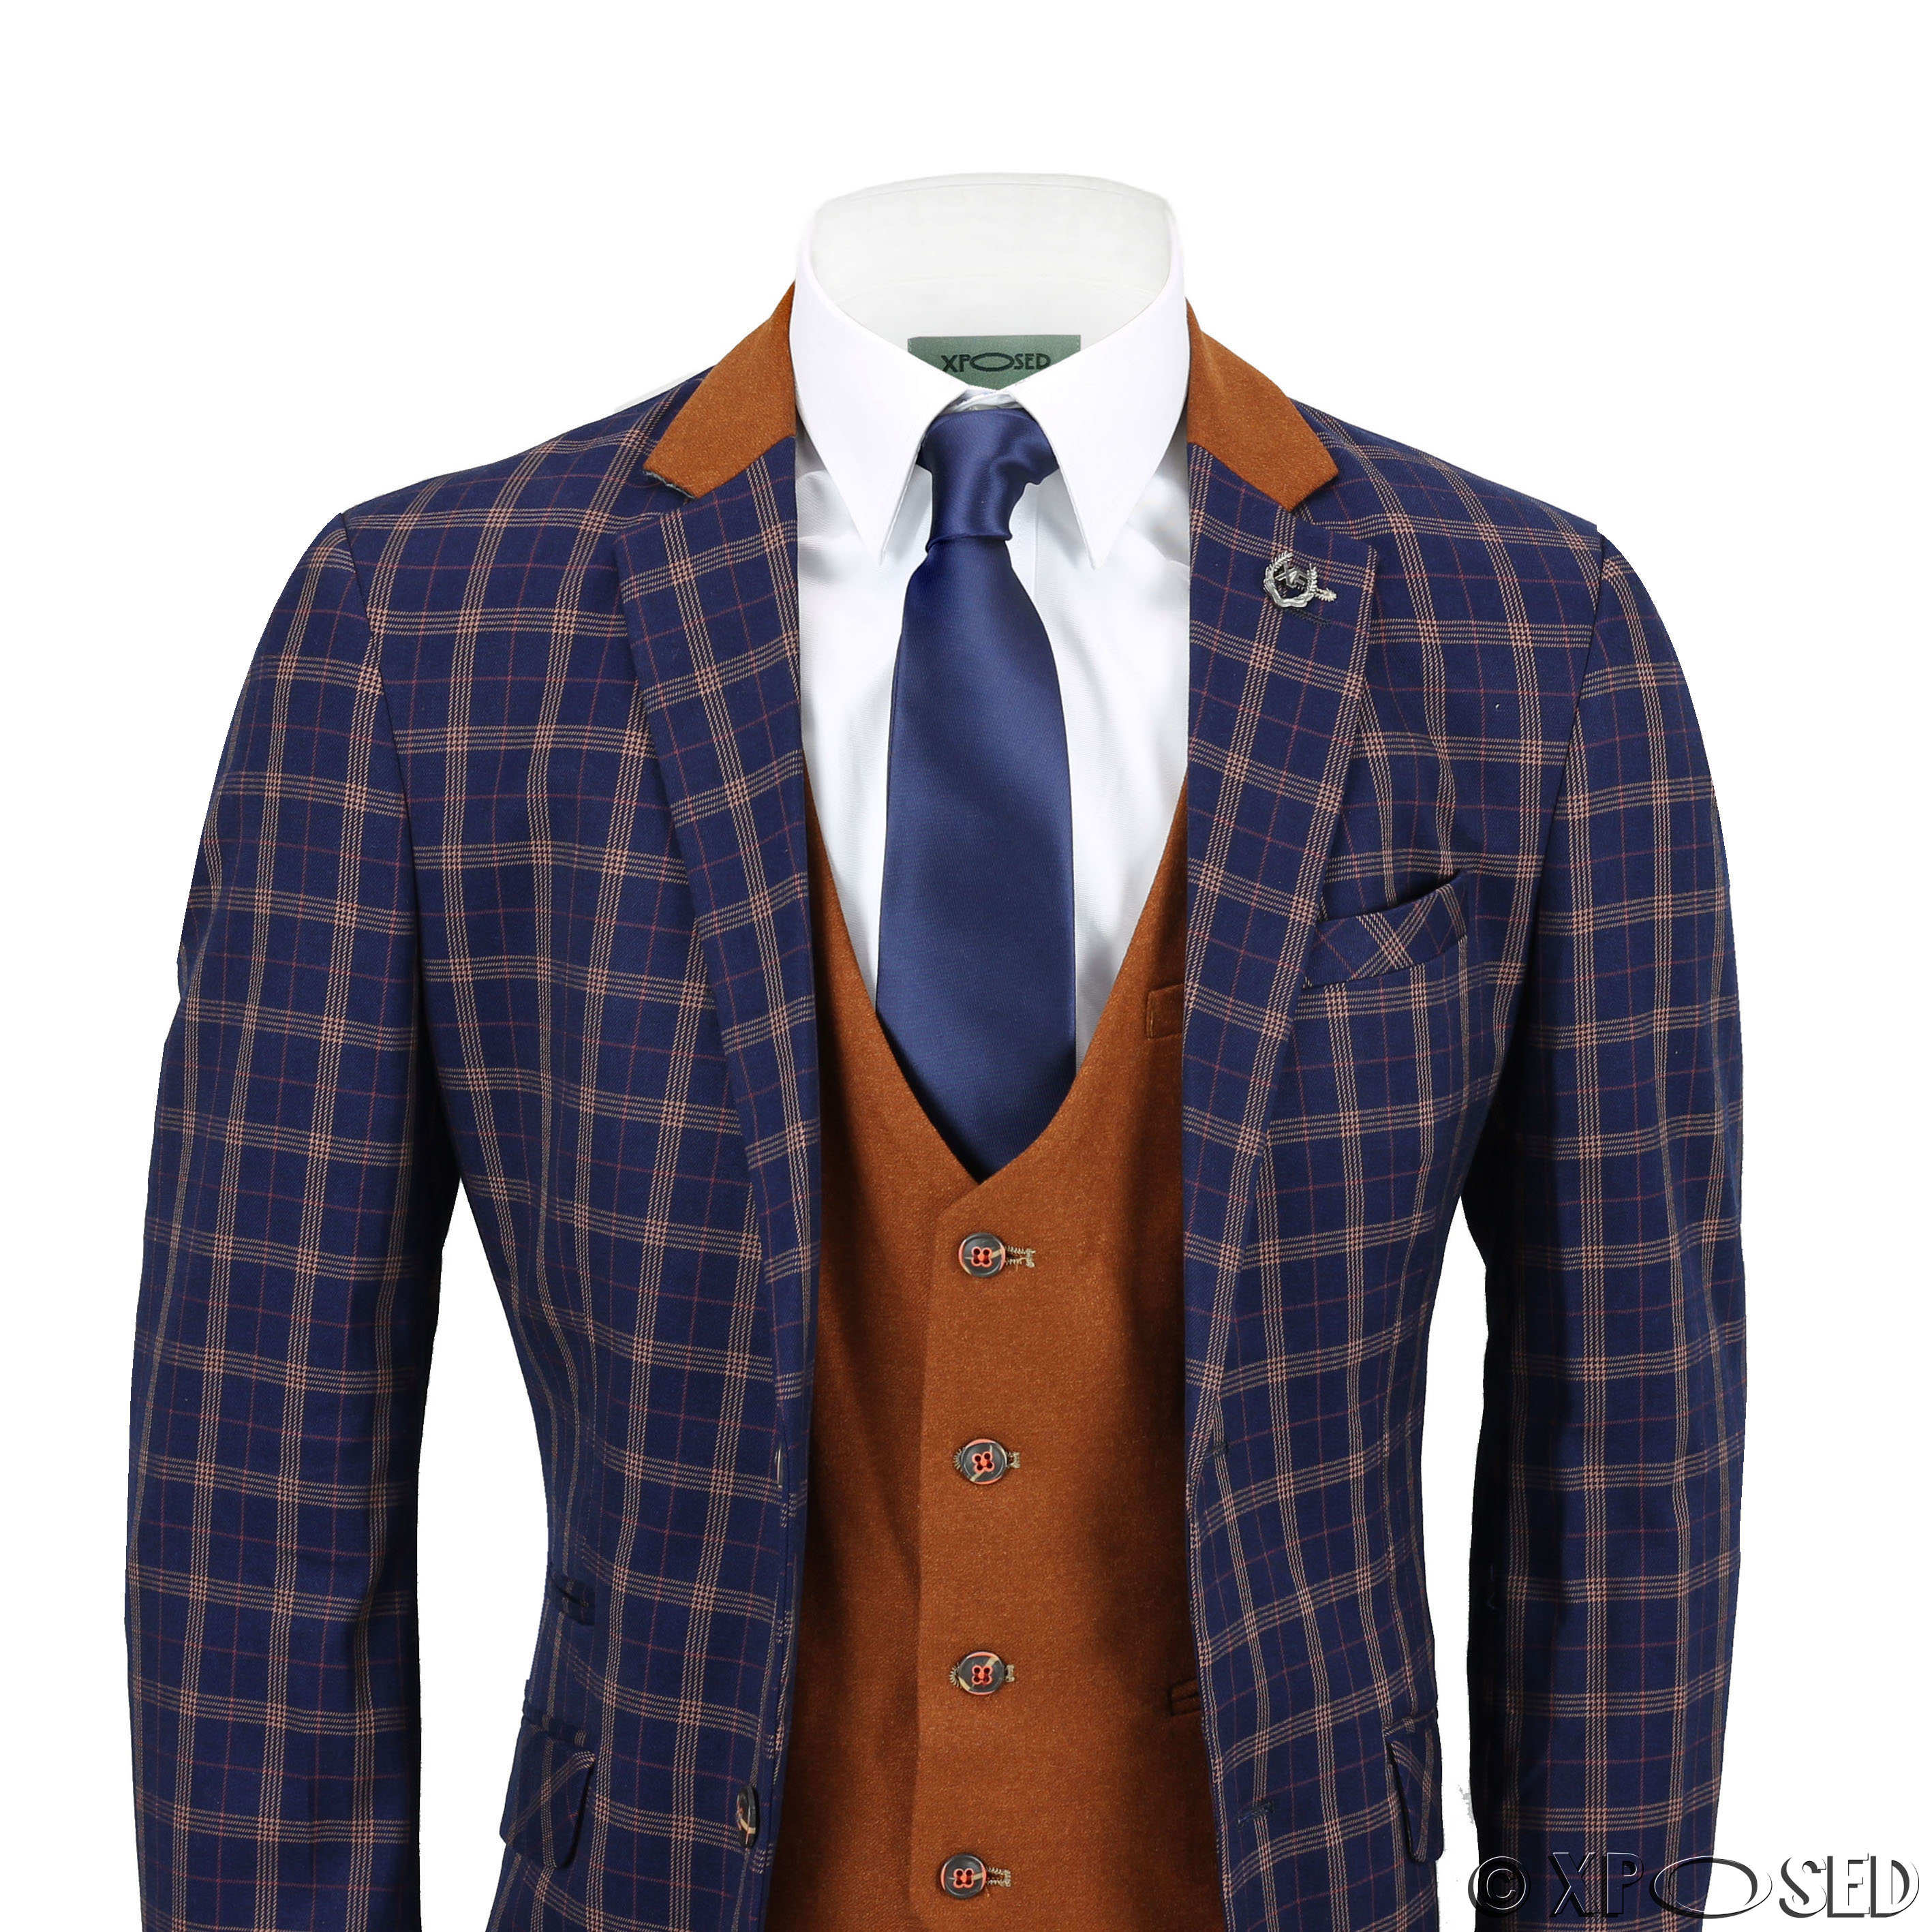 Mar 23,  · 1) Don't try to buy a navy blue waistcoat trying to match the suit. You will fail and look odd. 2) If you wear the coat for business and you are in a industry with more or less traditional dress code, then don't wear the suit with a contrast colored waistcoat.